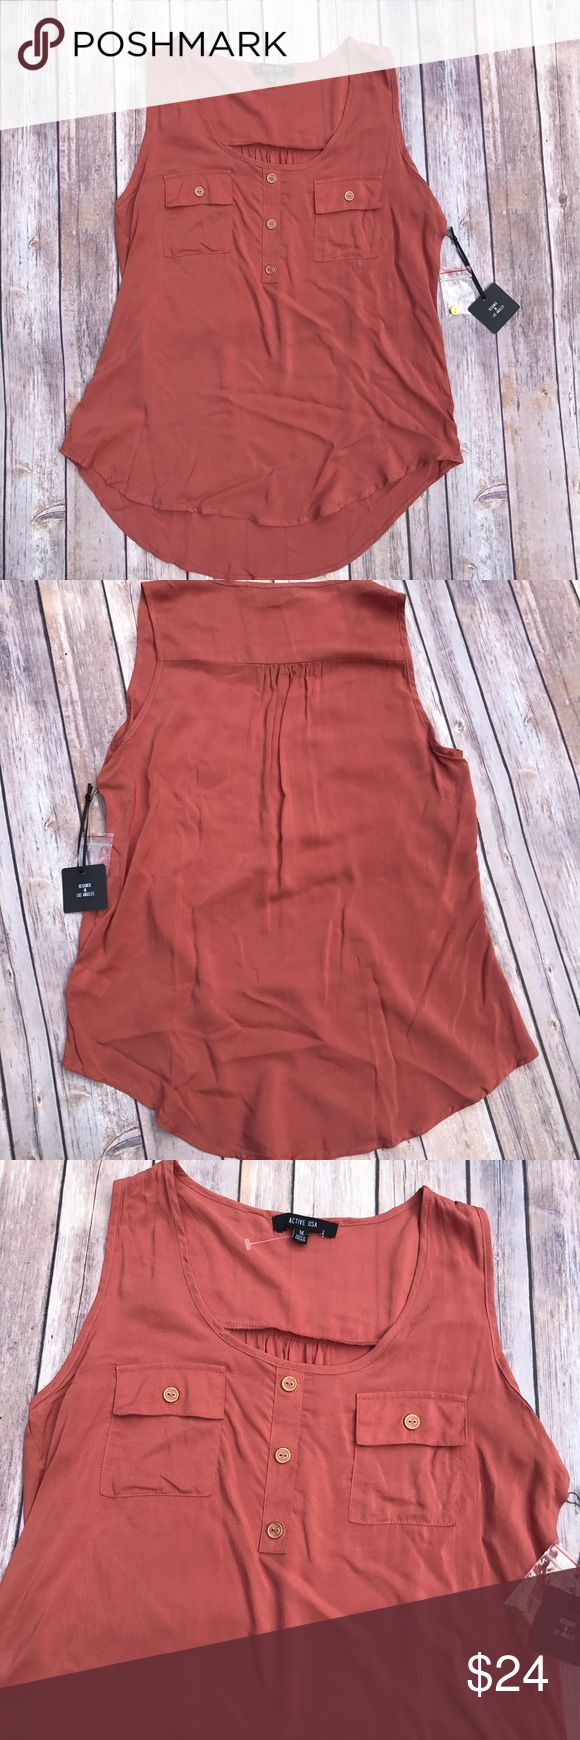 Active USA Sleeveless Top Size Medium. Brand new with tags. Material is 100% Rayon. Top was designed in Los Angeles. Perfect staple piece! Bundle with additional items for a 20% discount. Active USA Tops